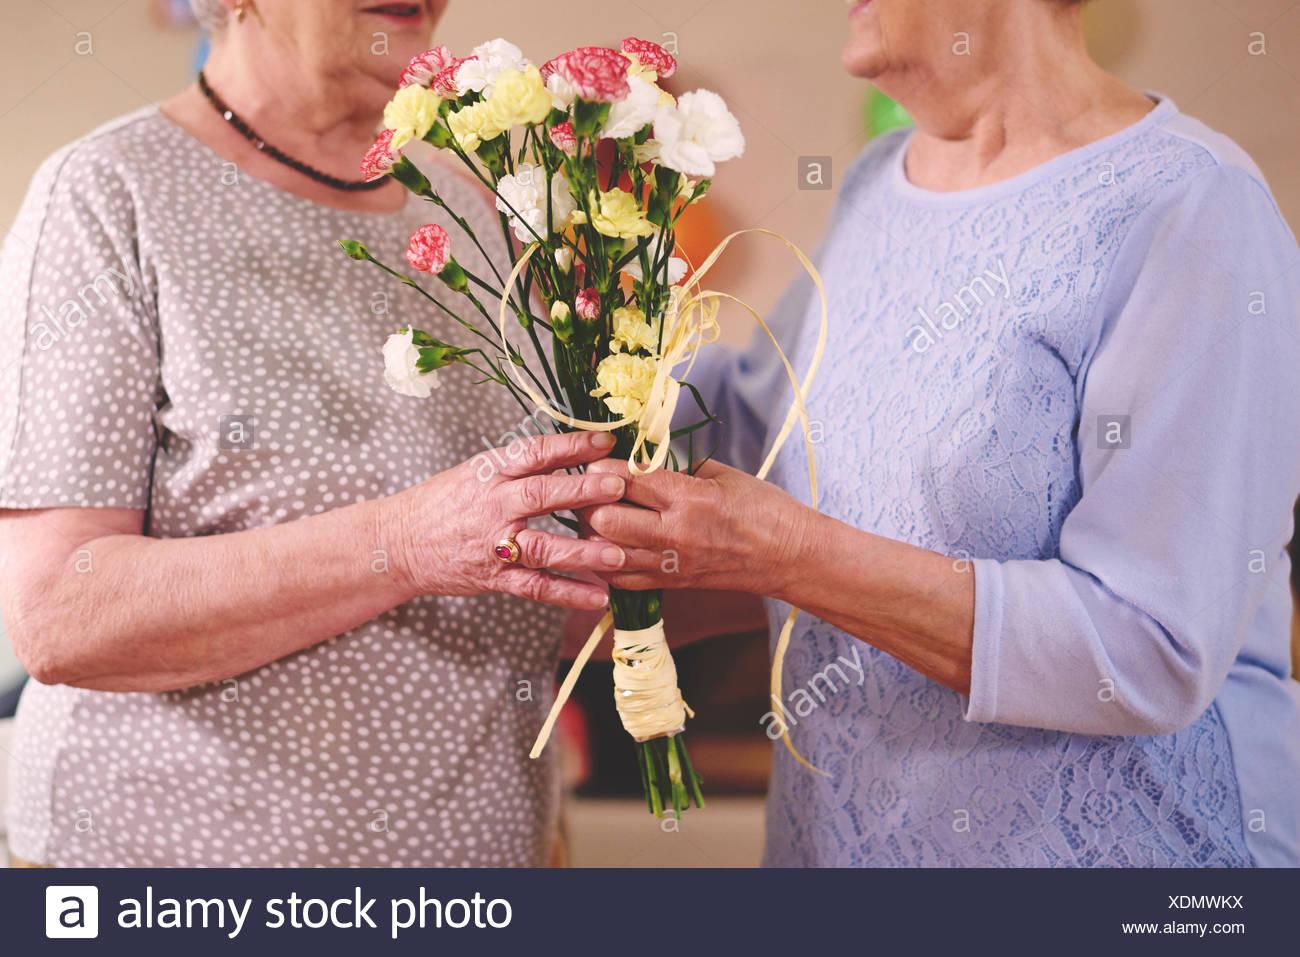 Senior Woman Giving Flowers To Friend At Birthday Party Stock Photo